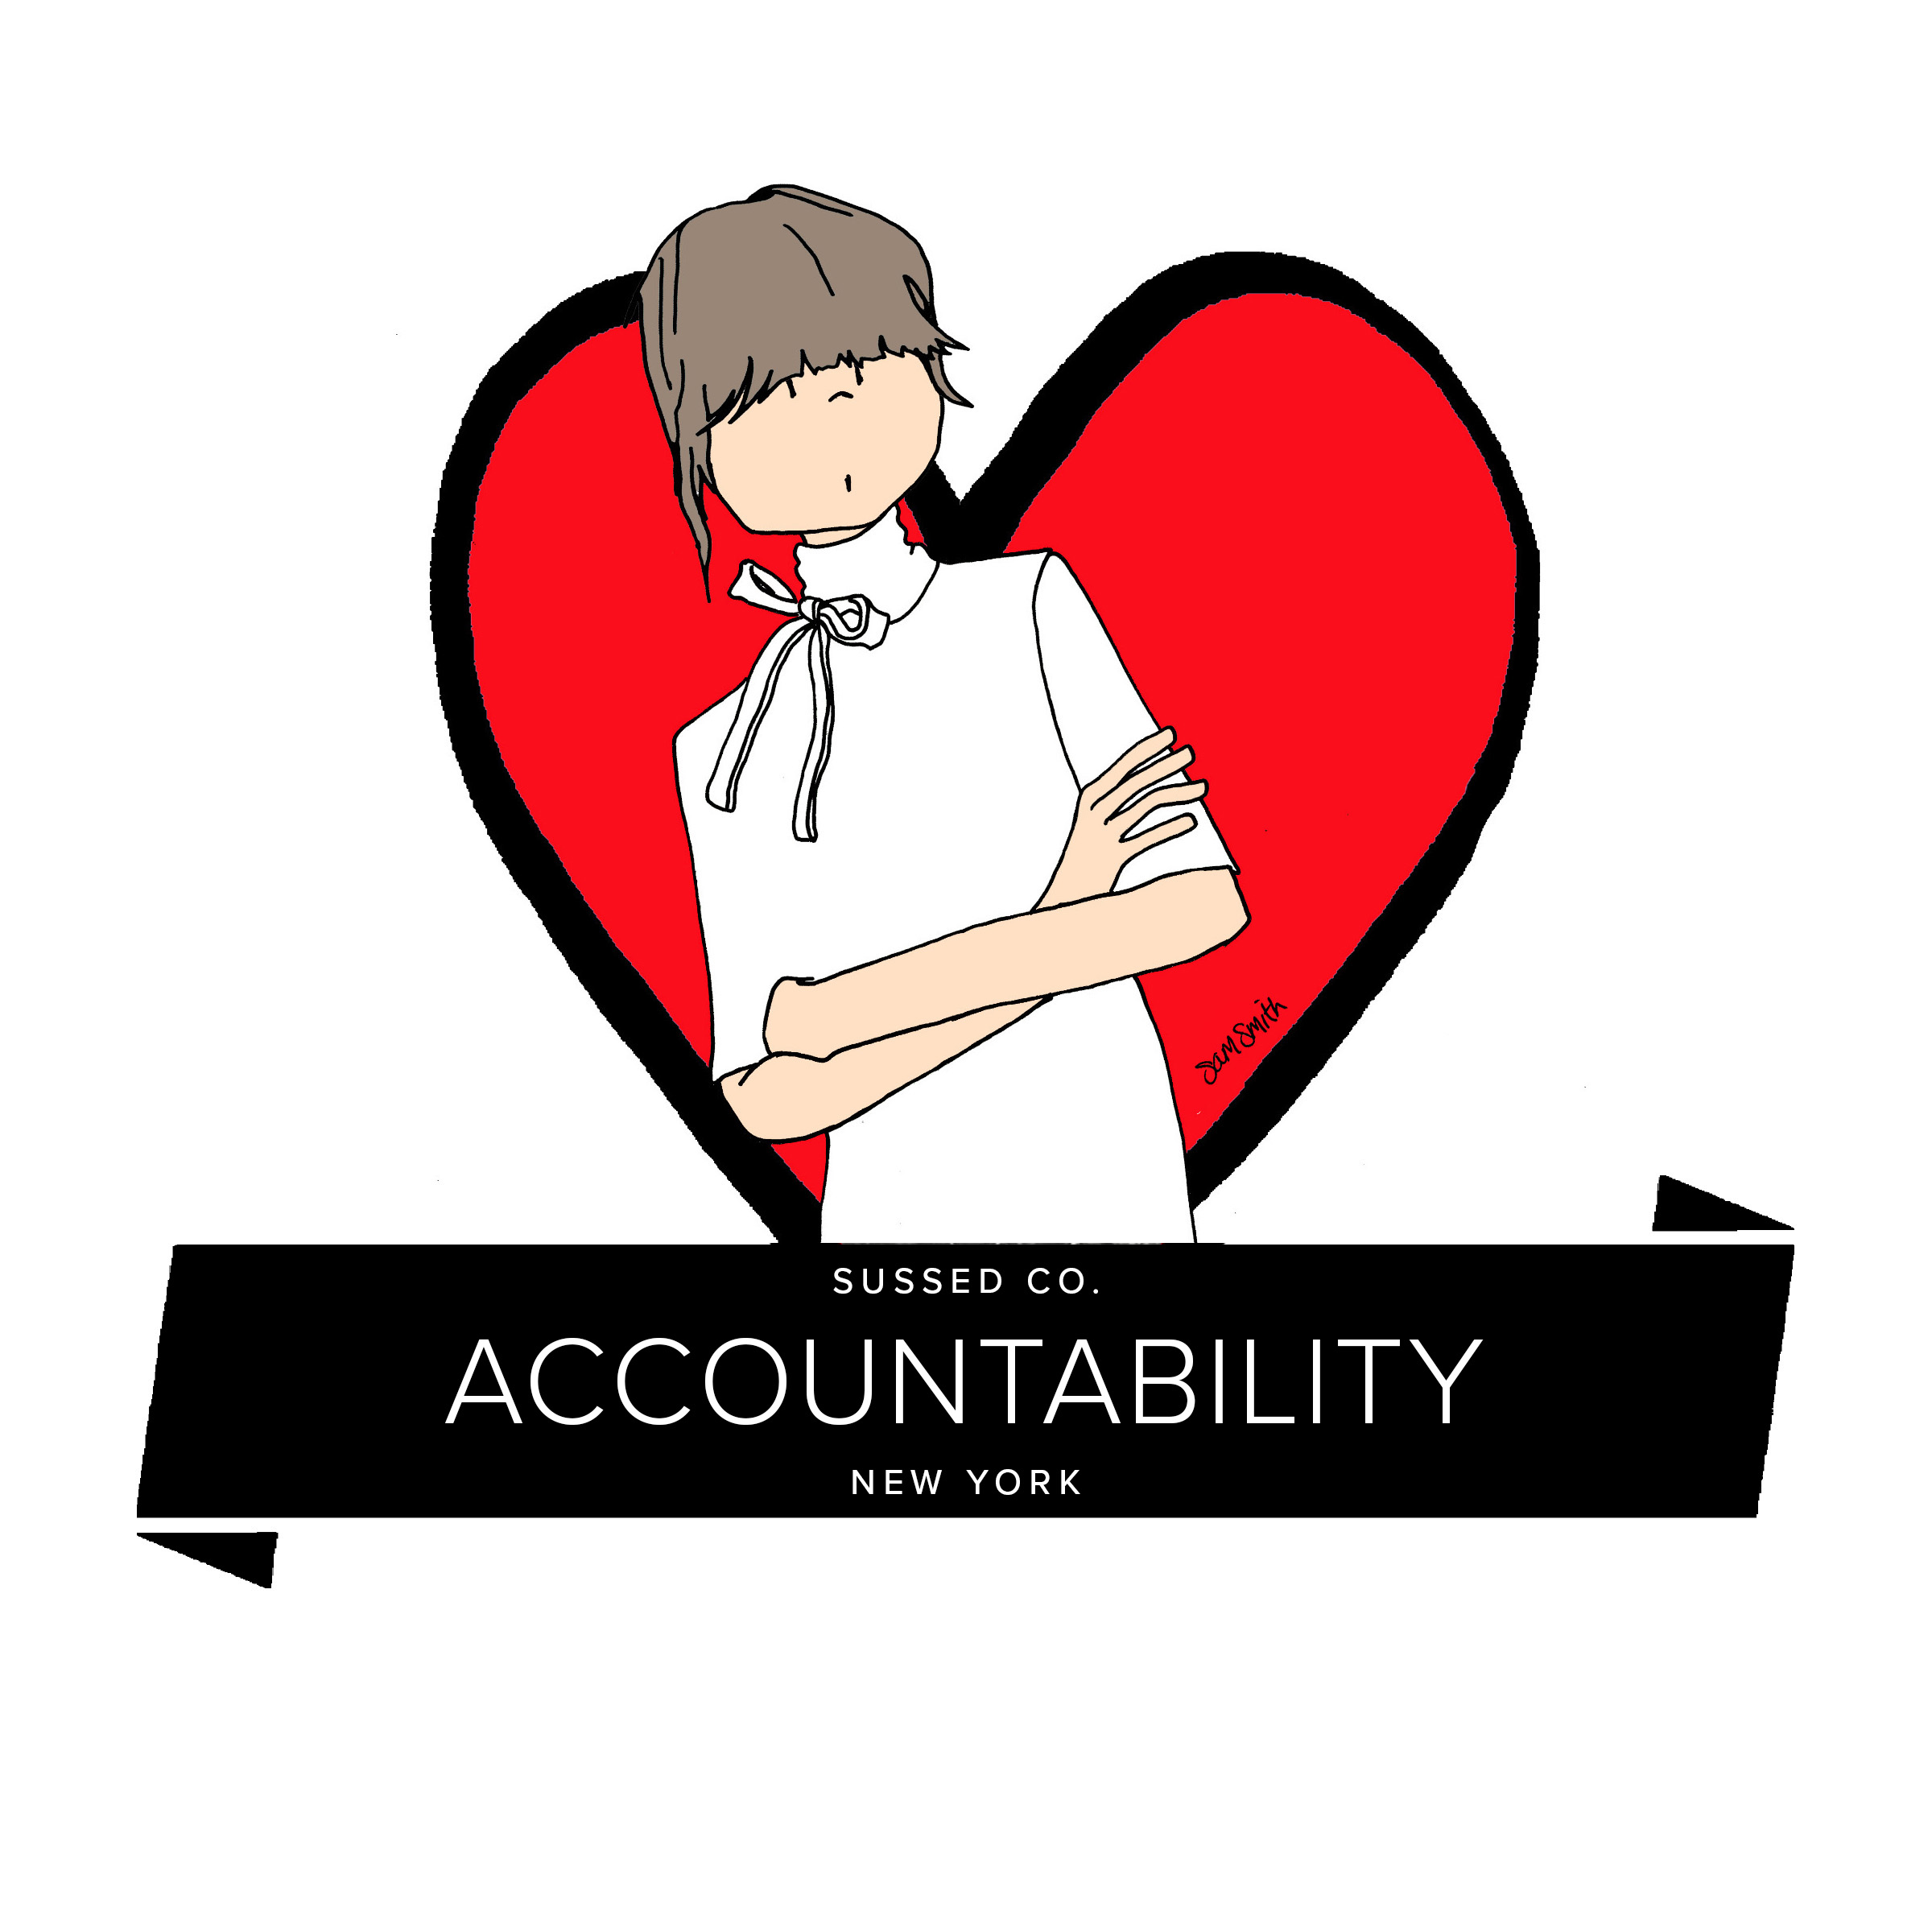 SUSSED ACCOUNTABILITY.jpg